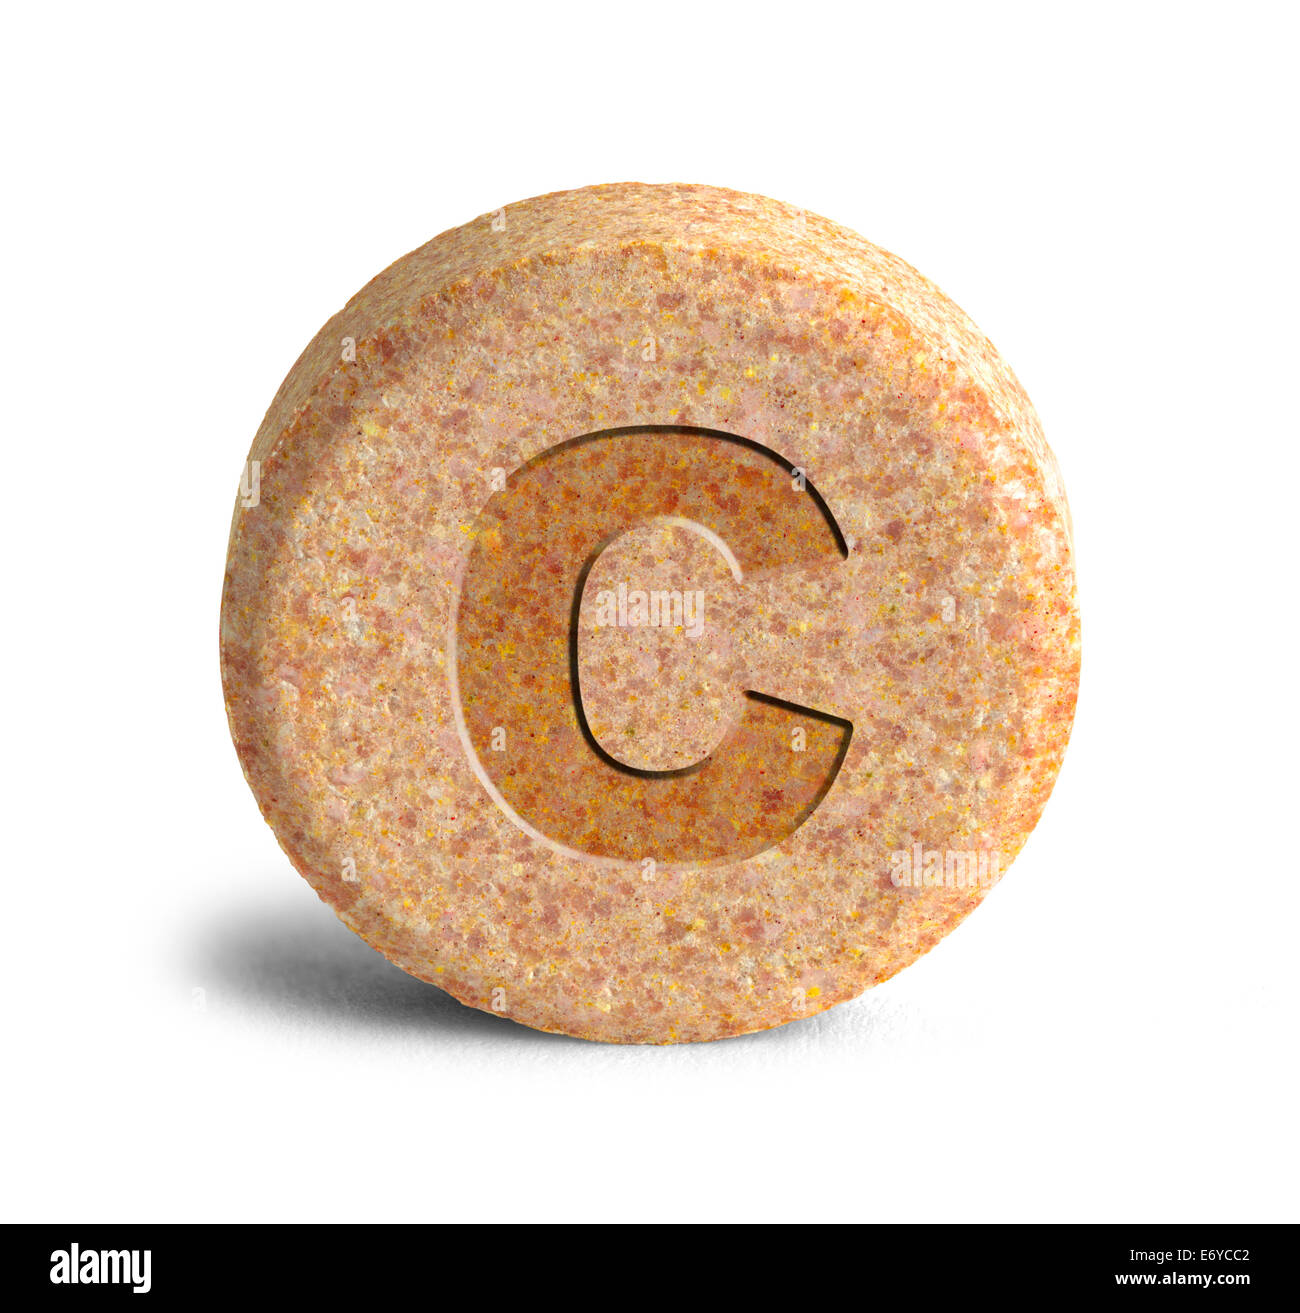 Large Orange Vitimin C Pill Isolated on White Background. - Stock Image